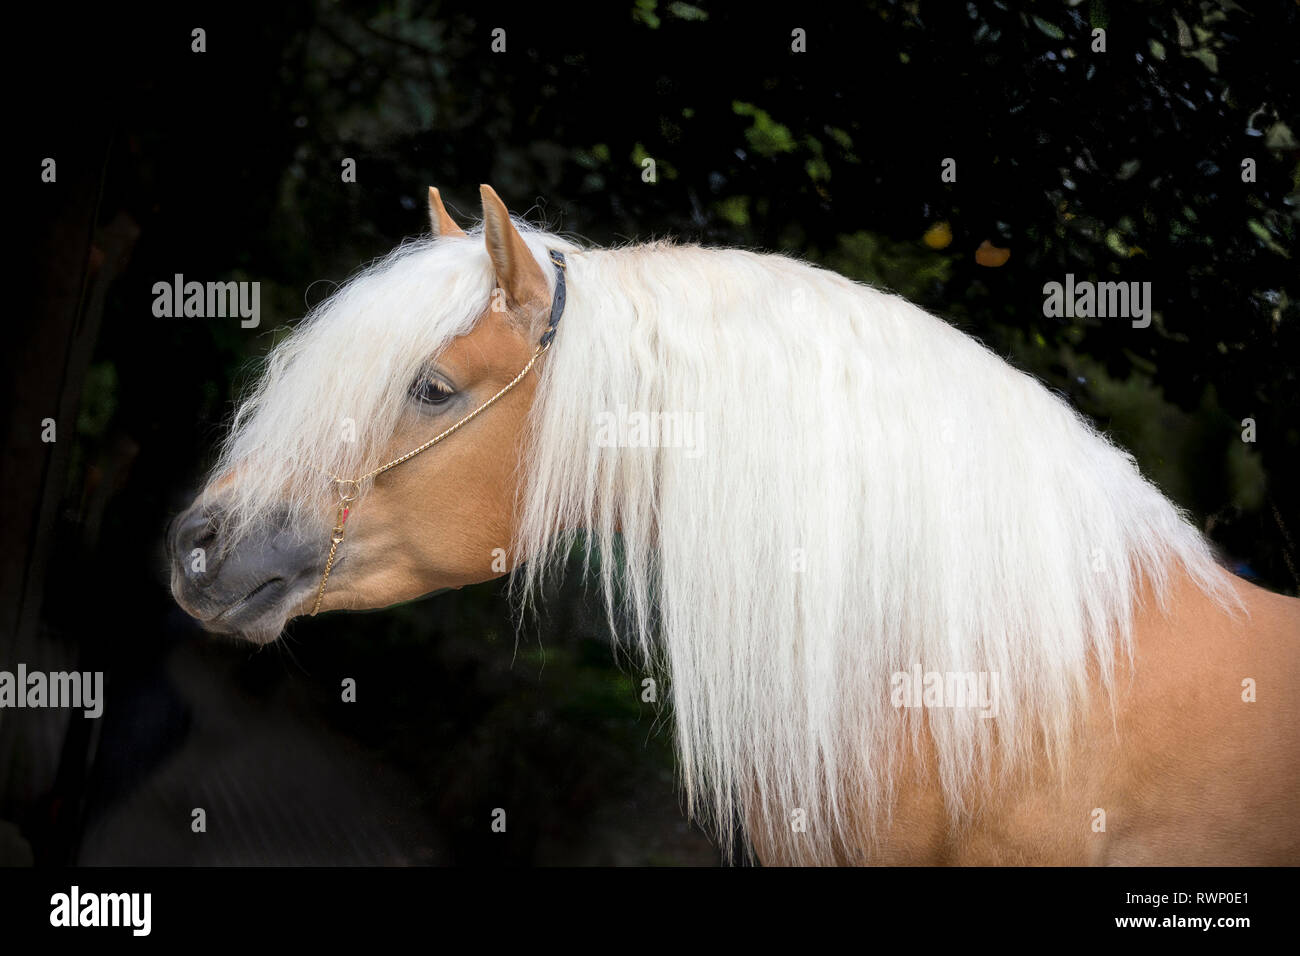 Haflinger Horse. Portrait of adult stallion against a black background. South Tyrol, Italy - Stock Image